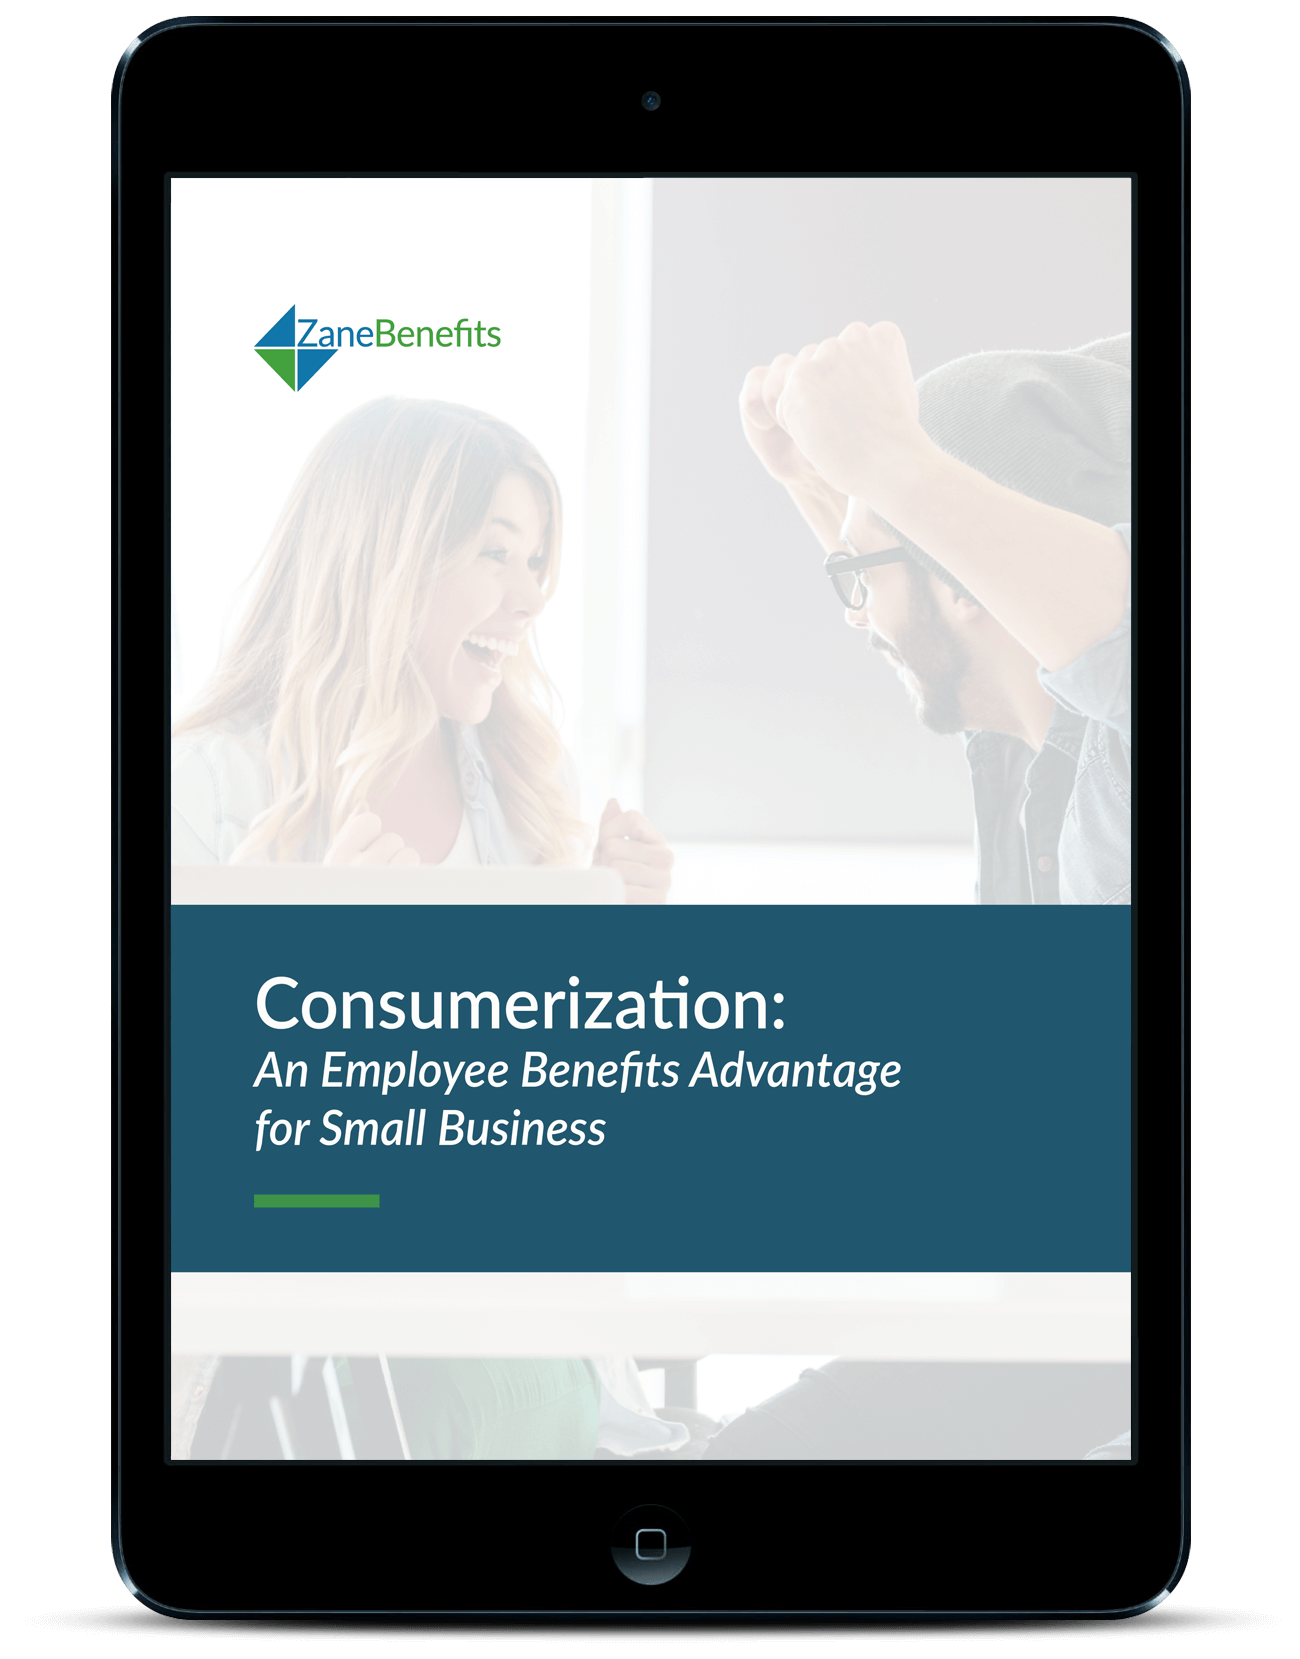 Consumerization: An Employee Benefits Advantage for Small Business